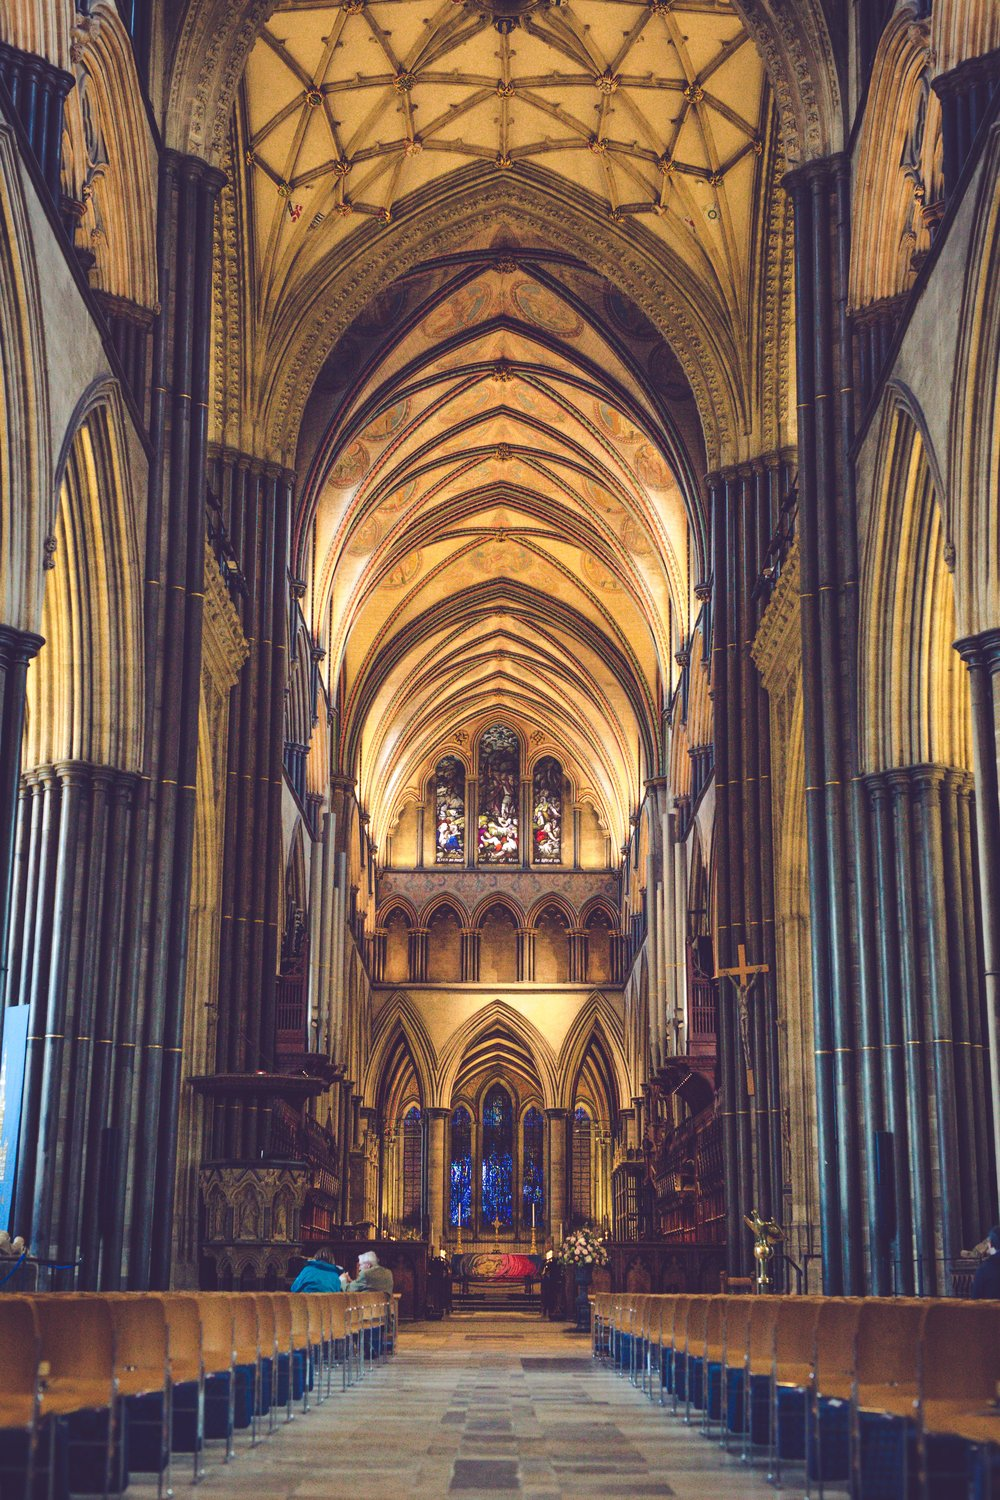 Even though I was really pushing a countryside yurt,we stayed in Salisbury on our first proper day off. The tallest church spire in the UK resides in this chilled town. So instead of a picture of the spire here's one of the inside. For all the horrors that religion has created, the architecture is regularly mind boggling.